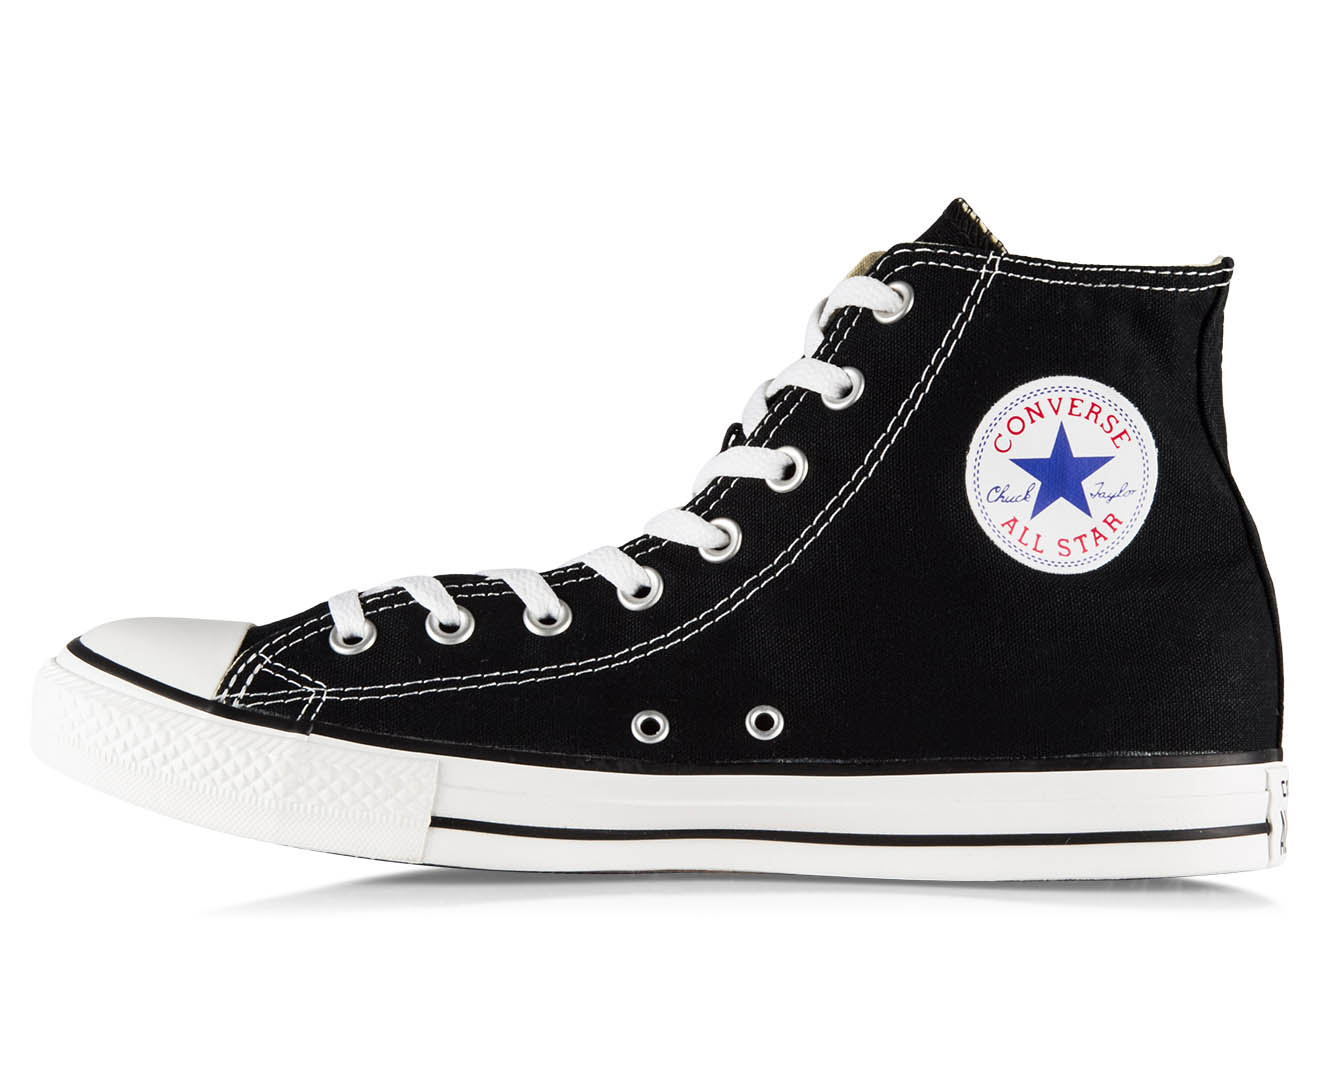 87a85cd43f0f Converse Chuck Taylor Unisex All Star High Top Shoe - Black